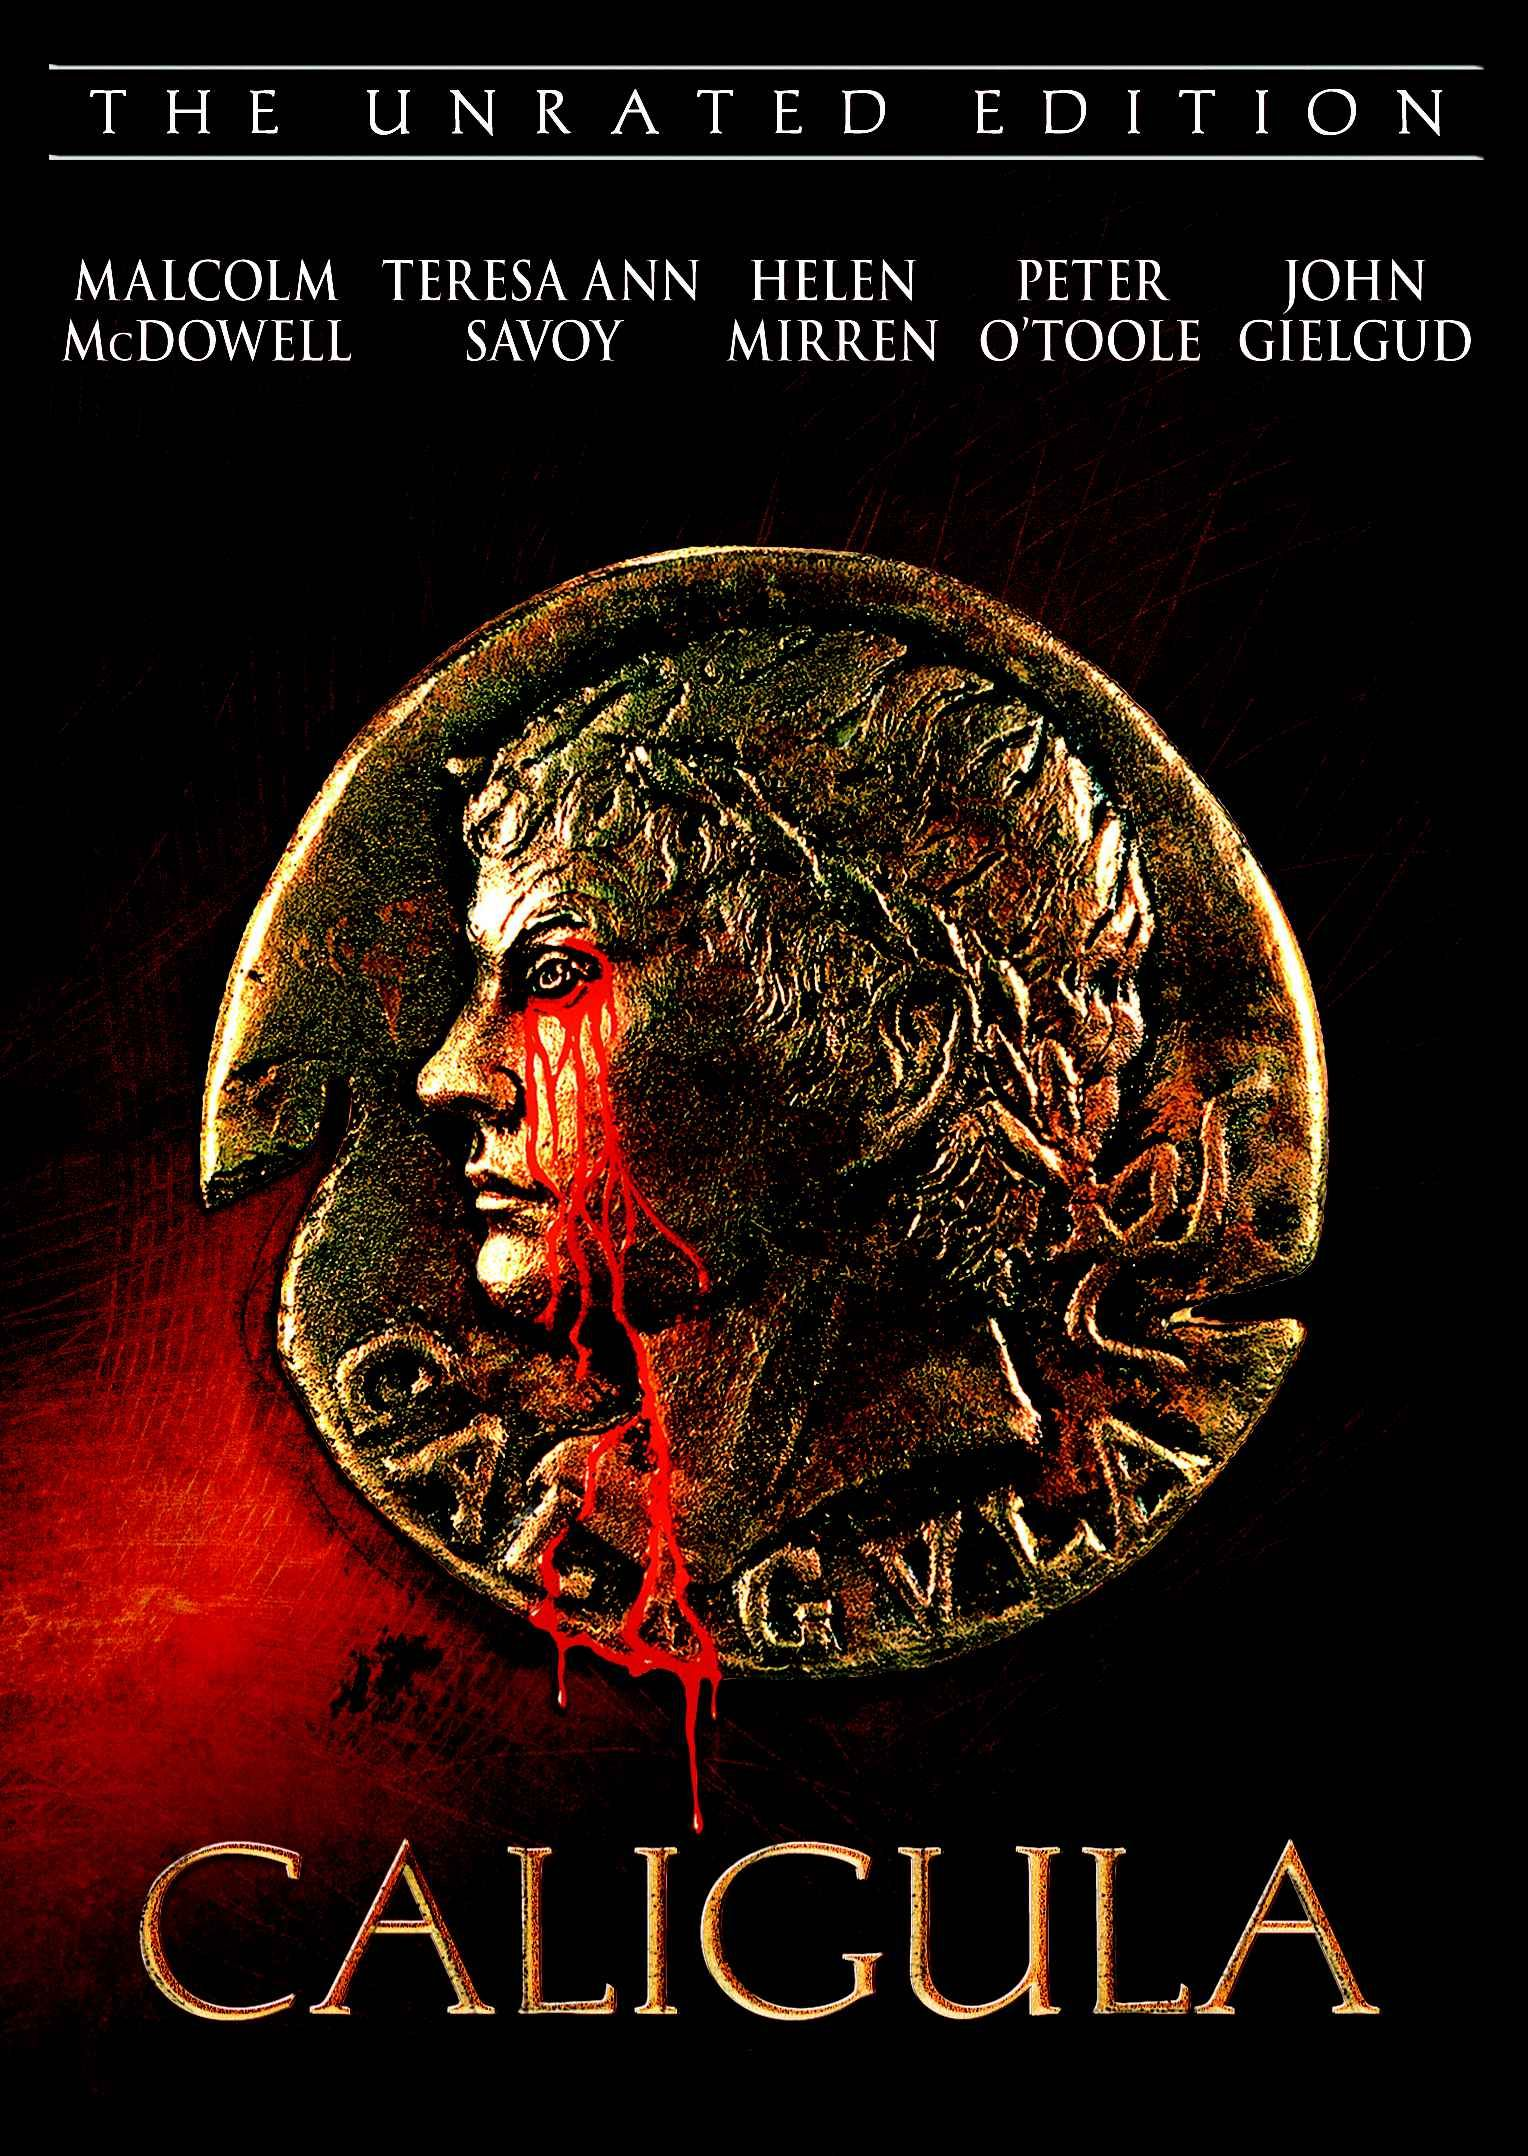 Caligula | Film & T.V. | Pinterest | Films